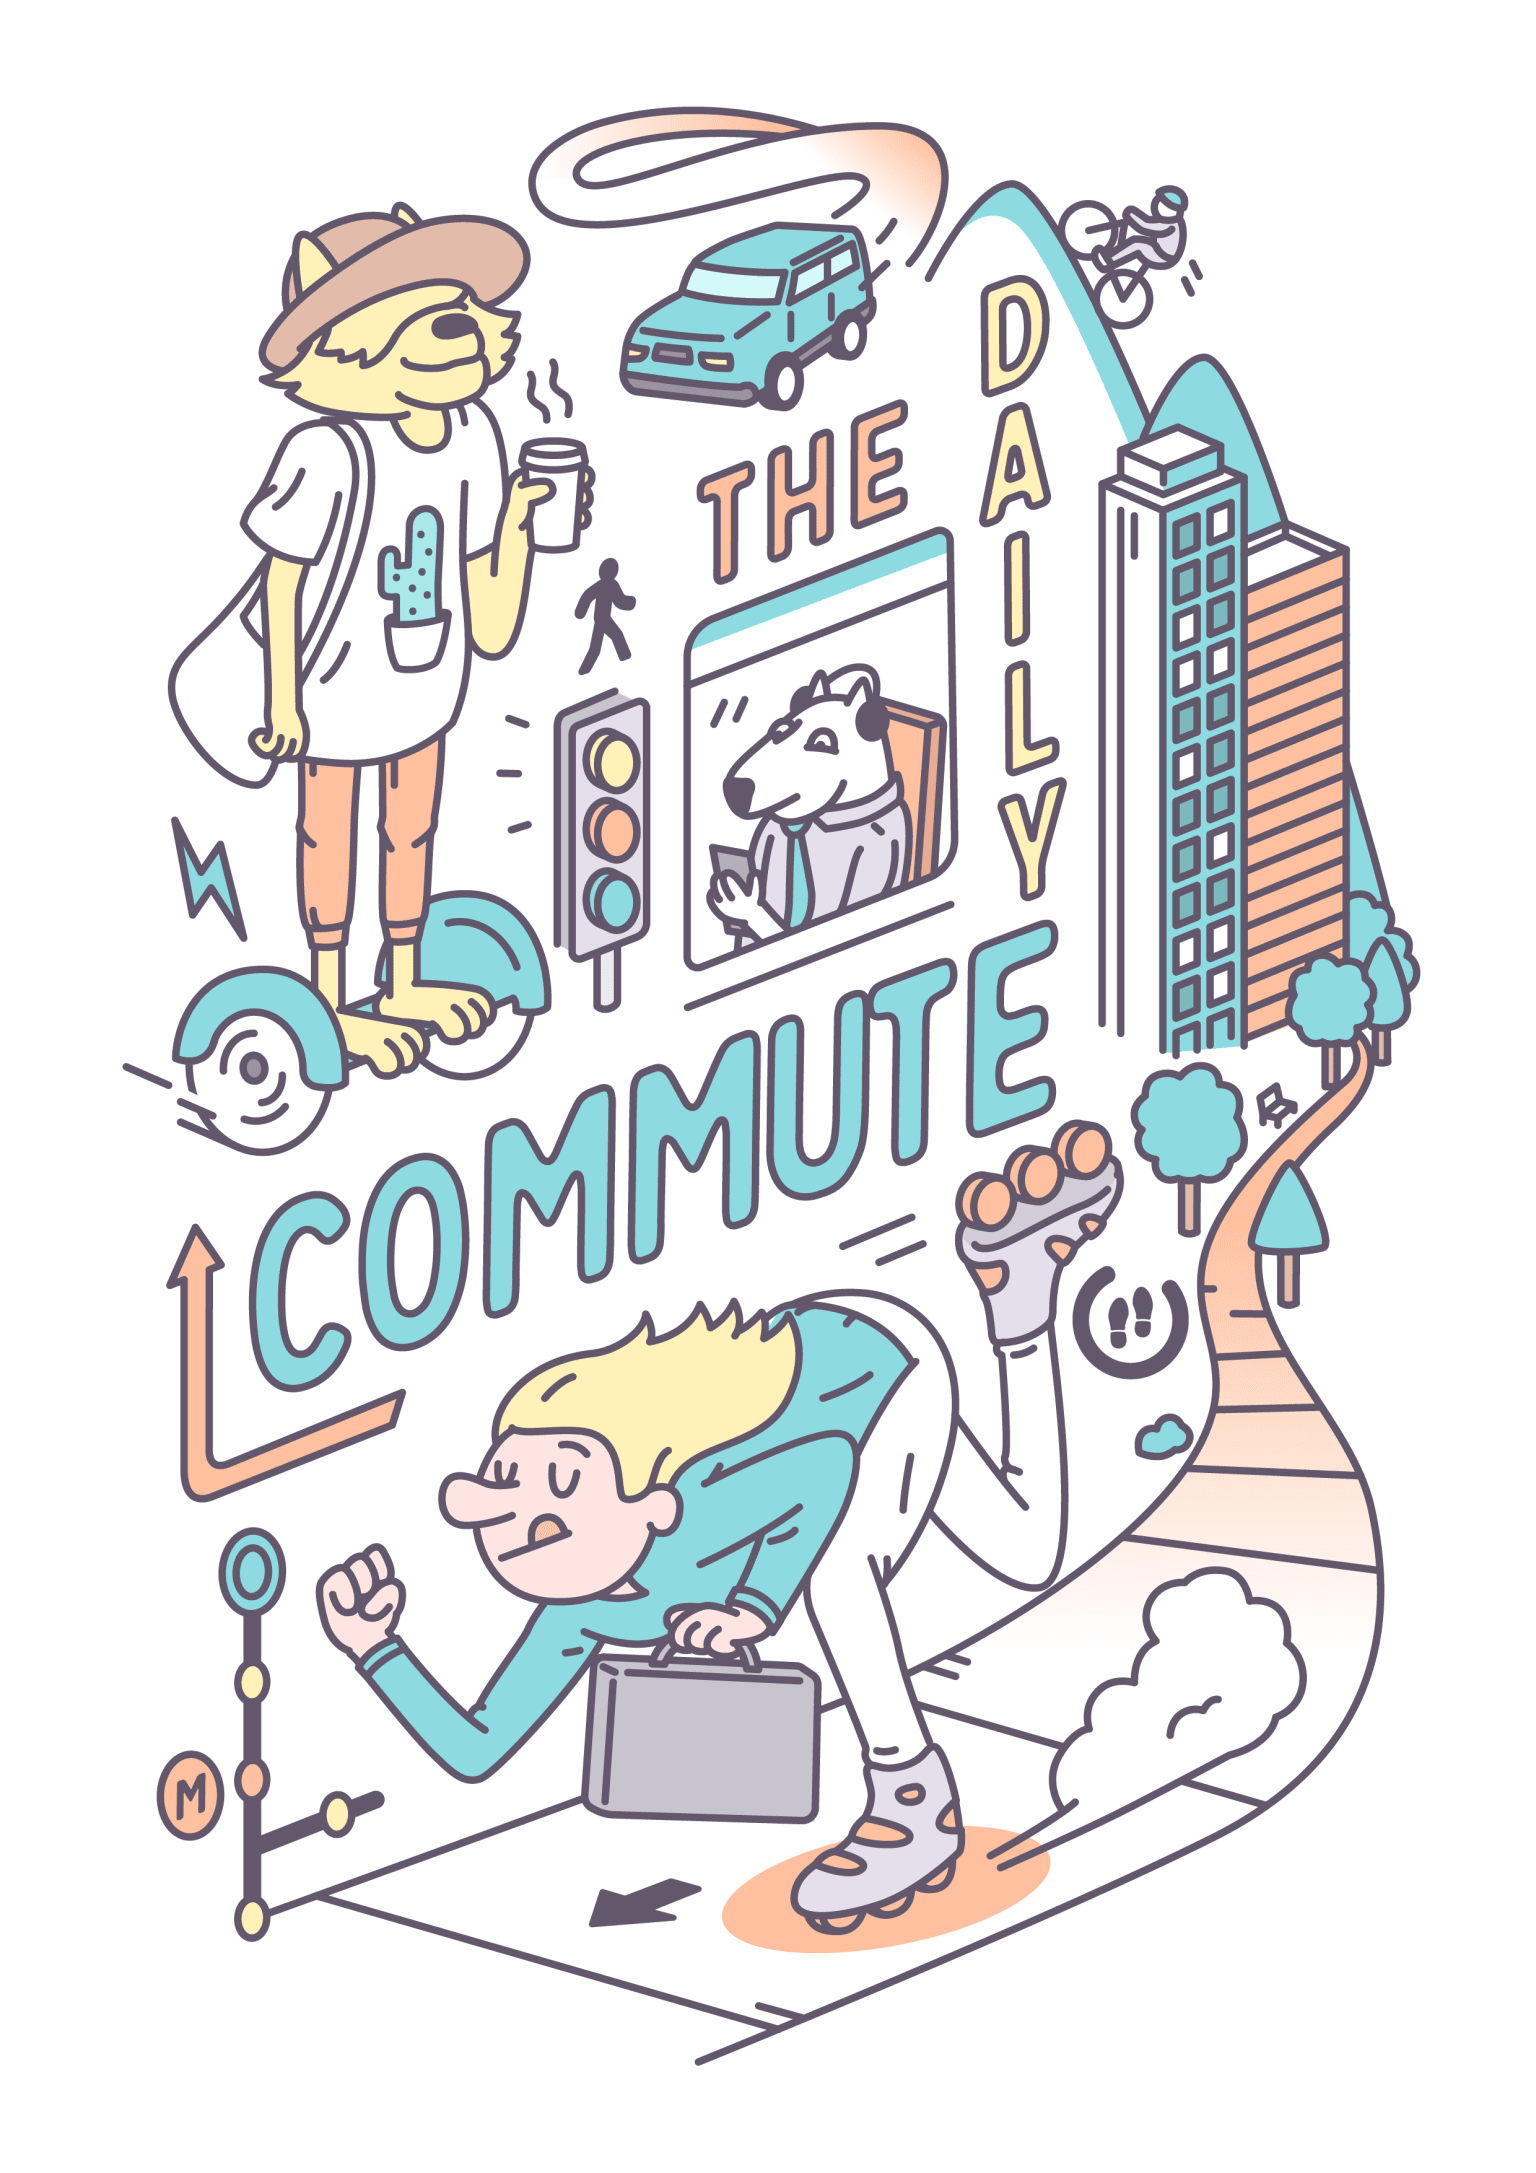 The daily commute - poster